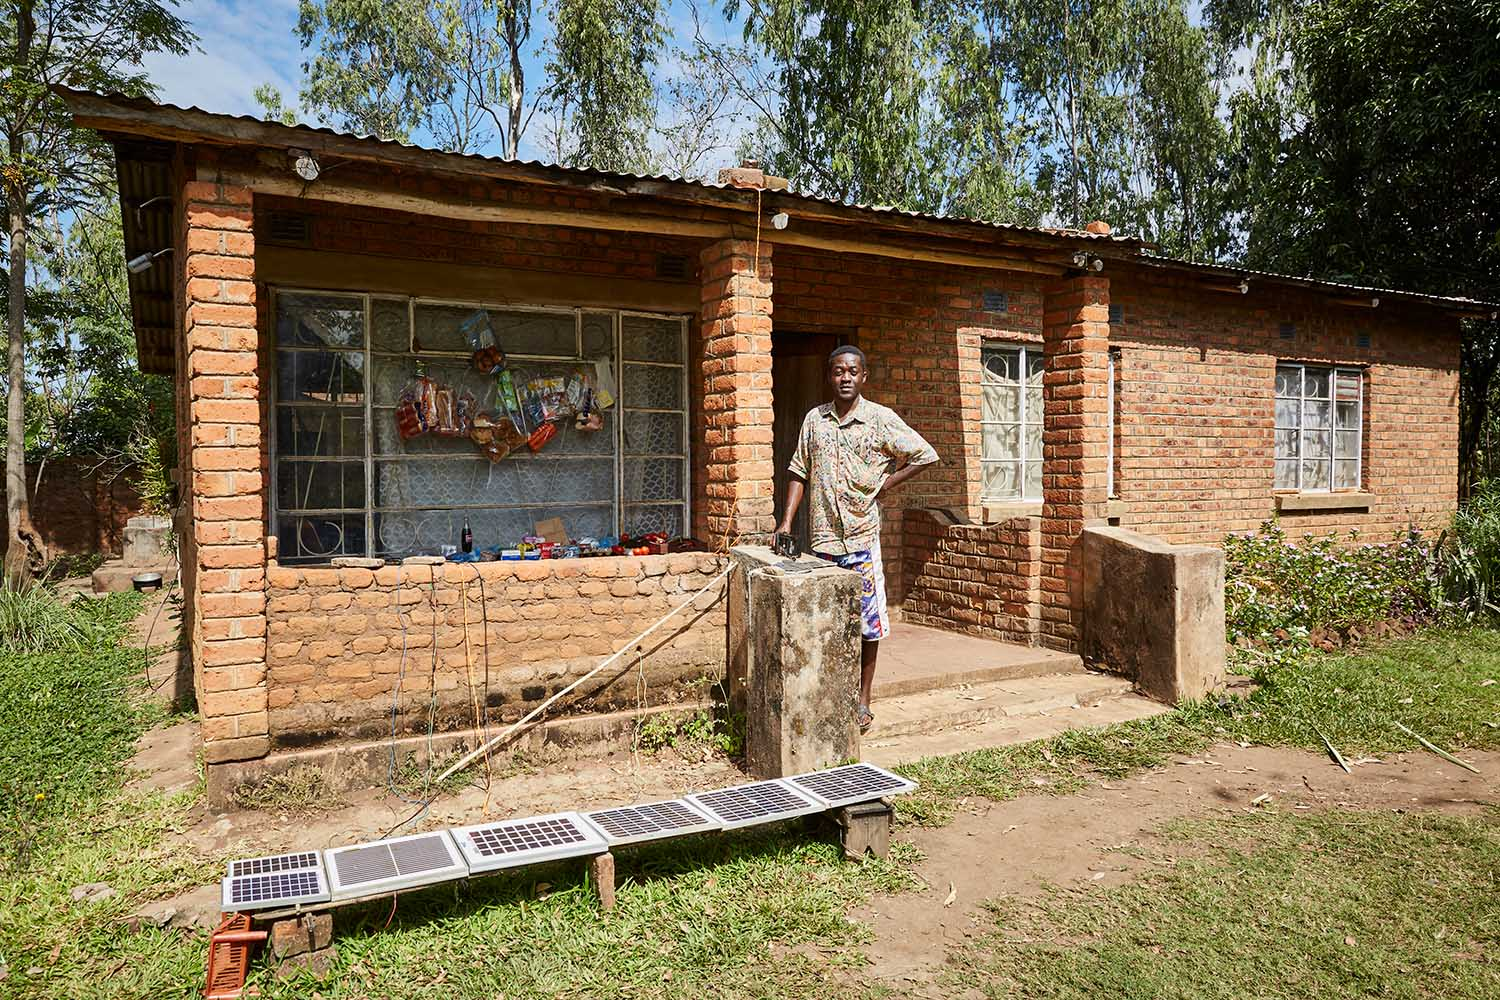 Felix Wonga (29) stands next to the small store he runs with his father, Robert (56), Luchenza, southern Malawi, 2017.  Felix runs the mobile phone charging business, while his father takes care of the shop front. The solar panels laid out in front of the store power a car battery which, Felix uses to charge up to five mobile phones at once. Because Felix and Robert's home is the only one in the area with solar panels, business is good.